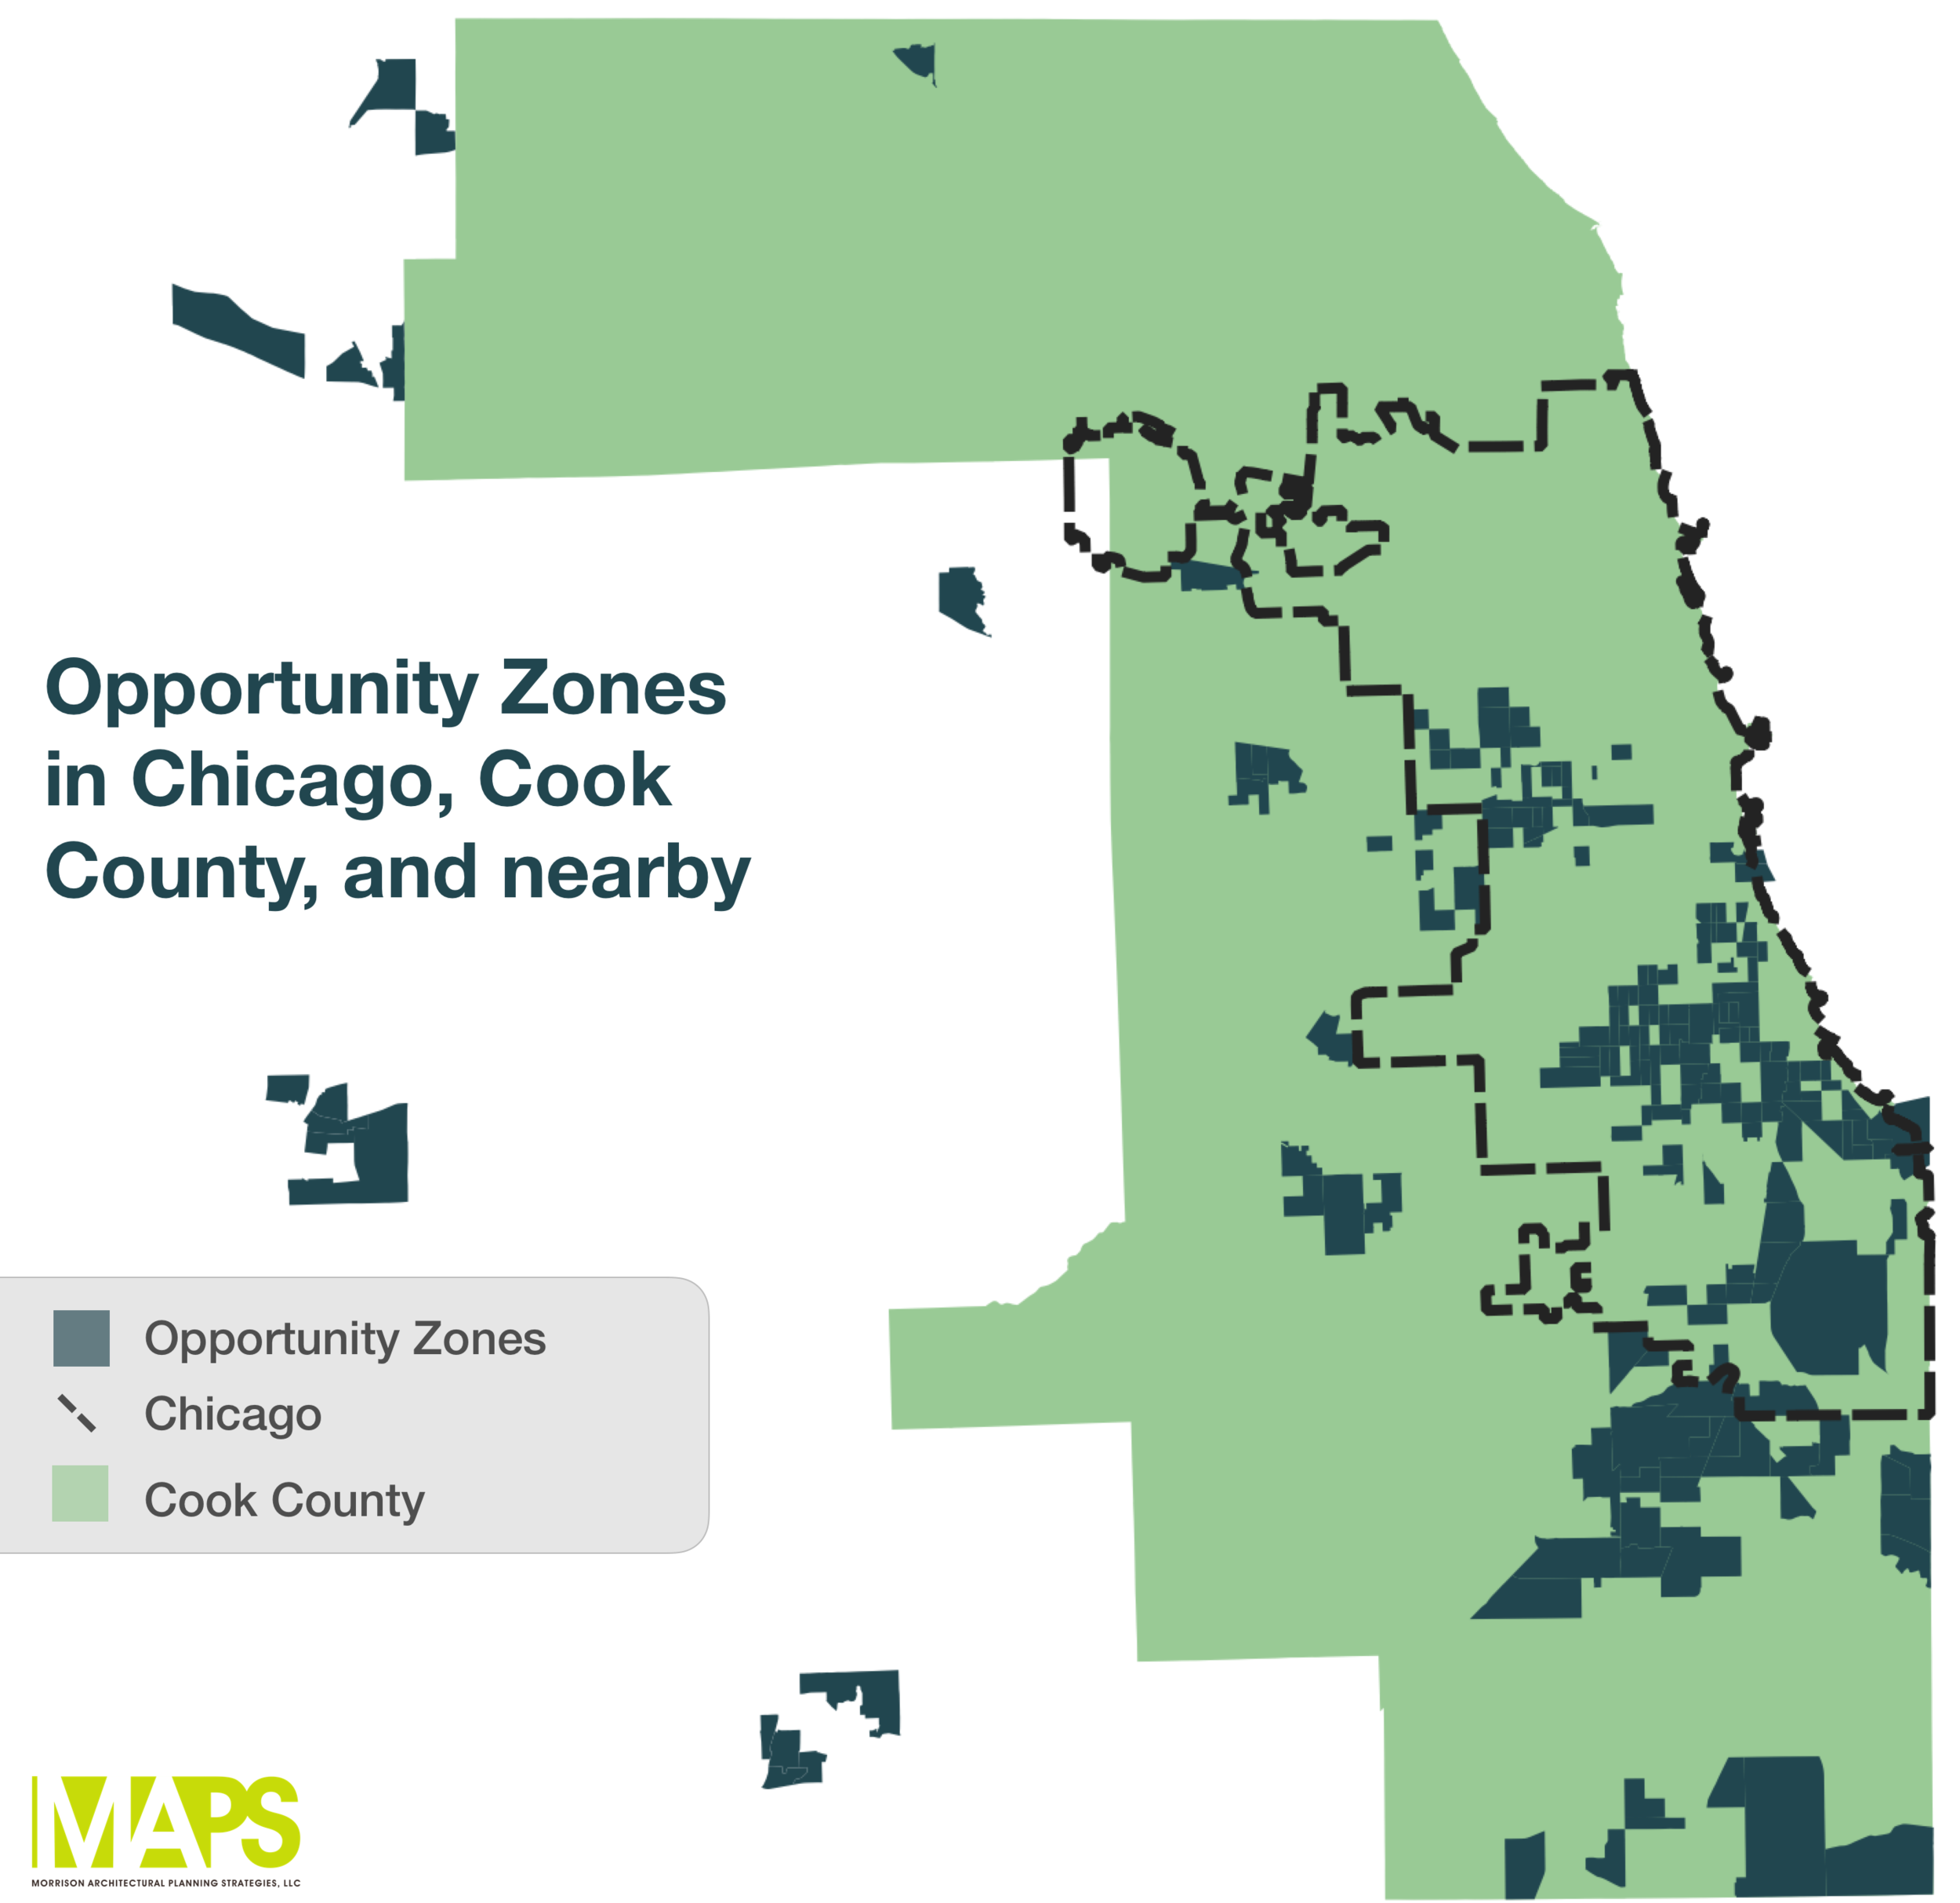 The map shows an overview of where Opportunity Zones are in Chicago, Cook County, and in adjacent Illinois counties.